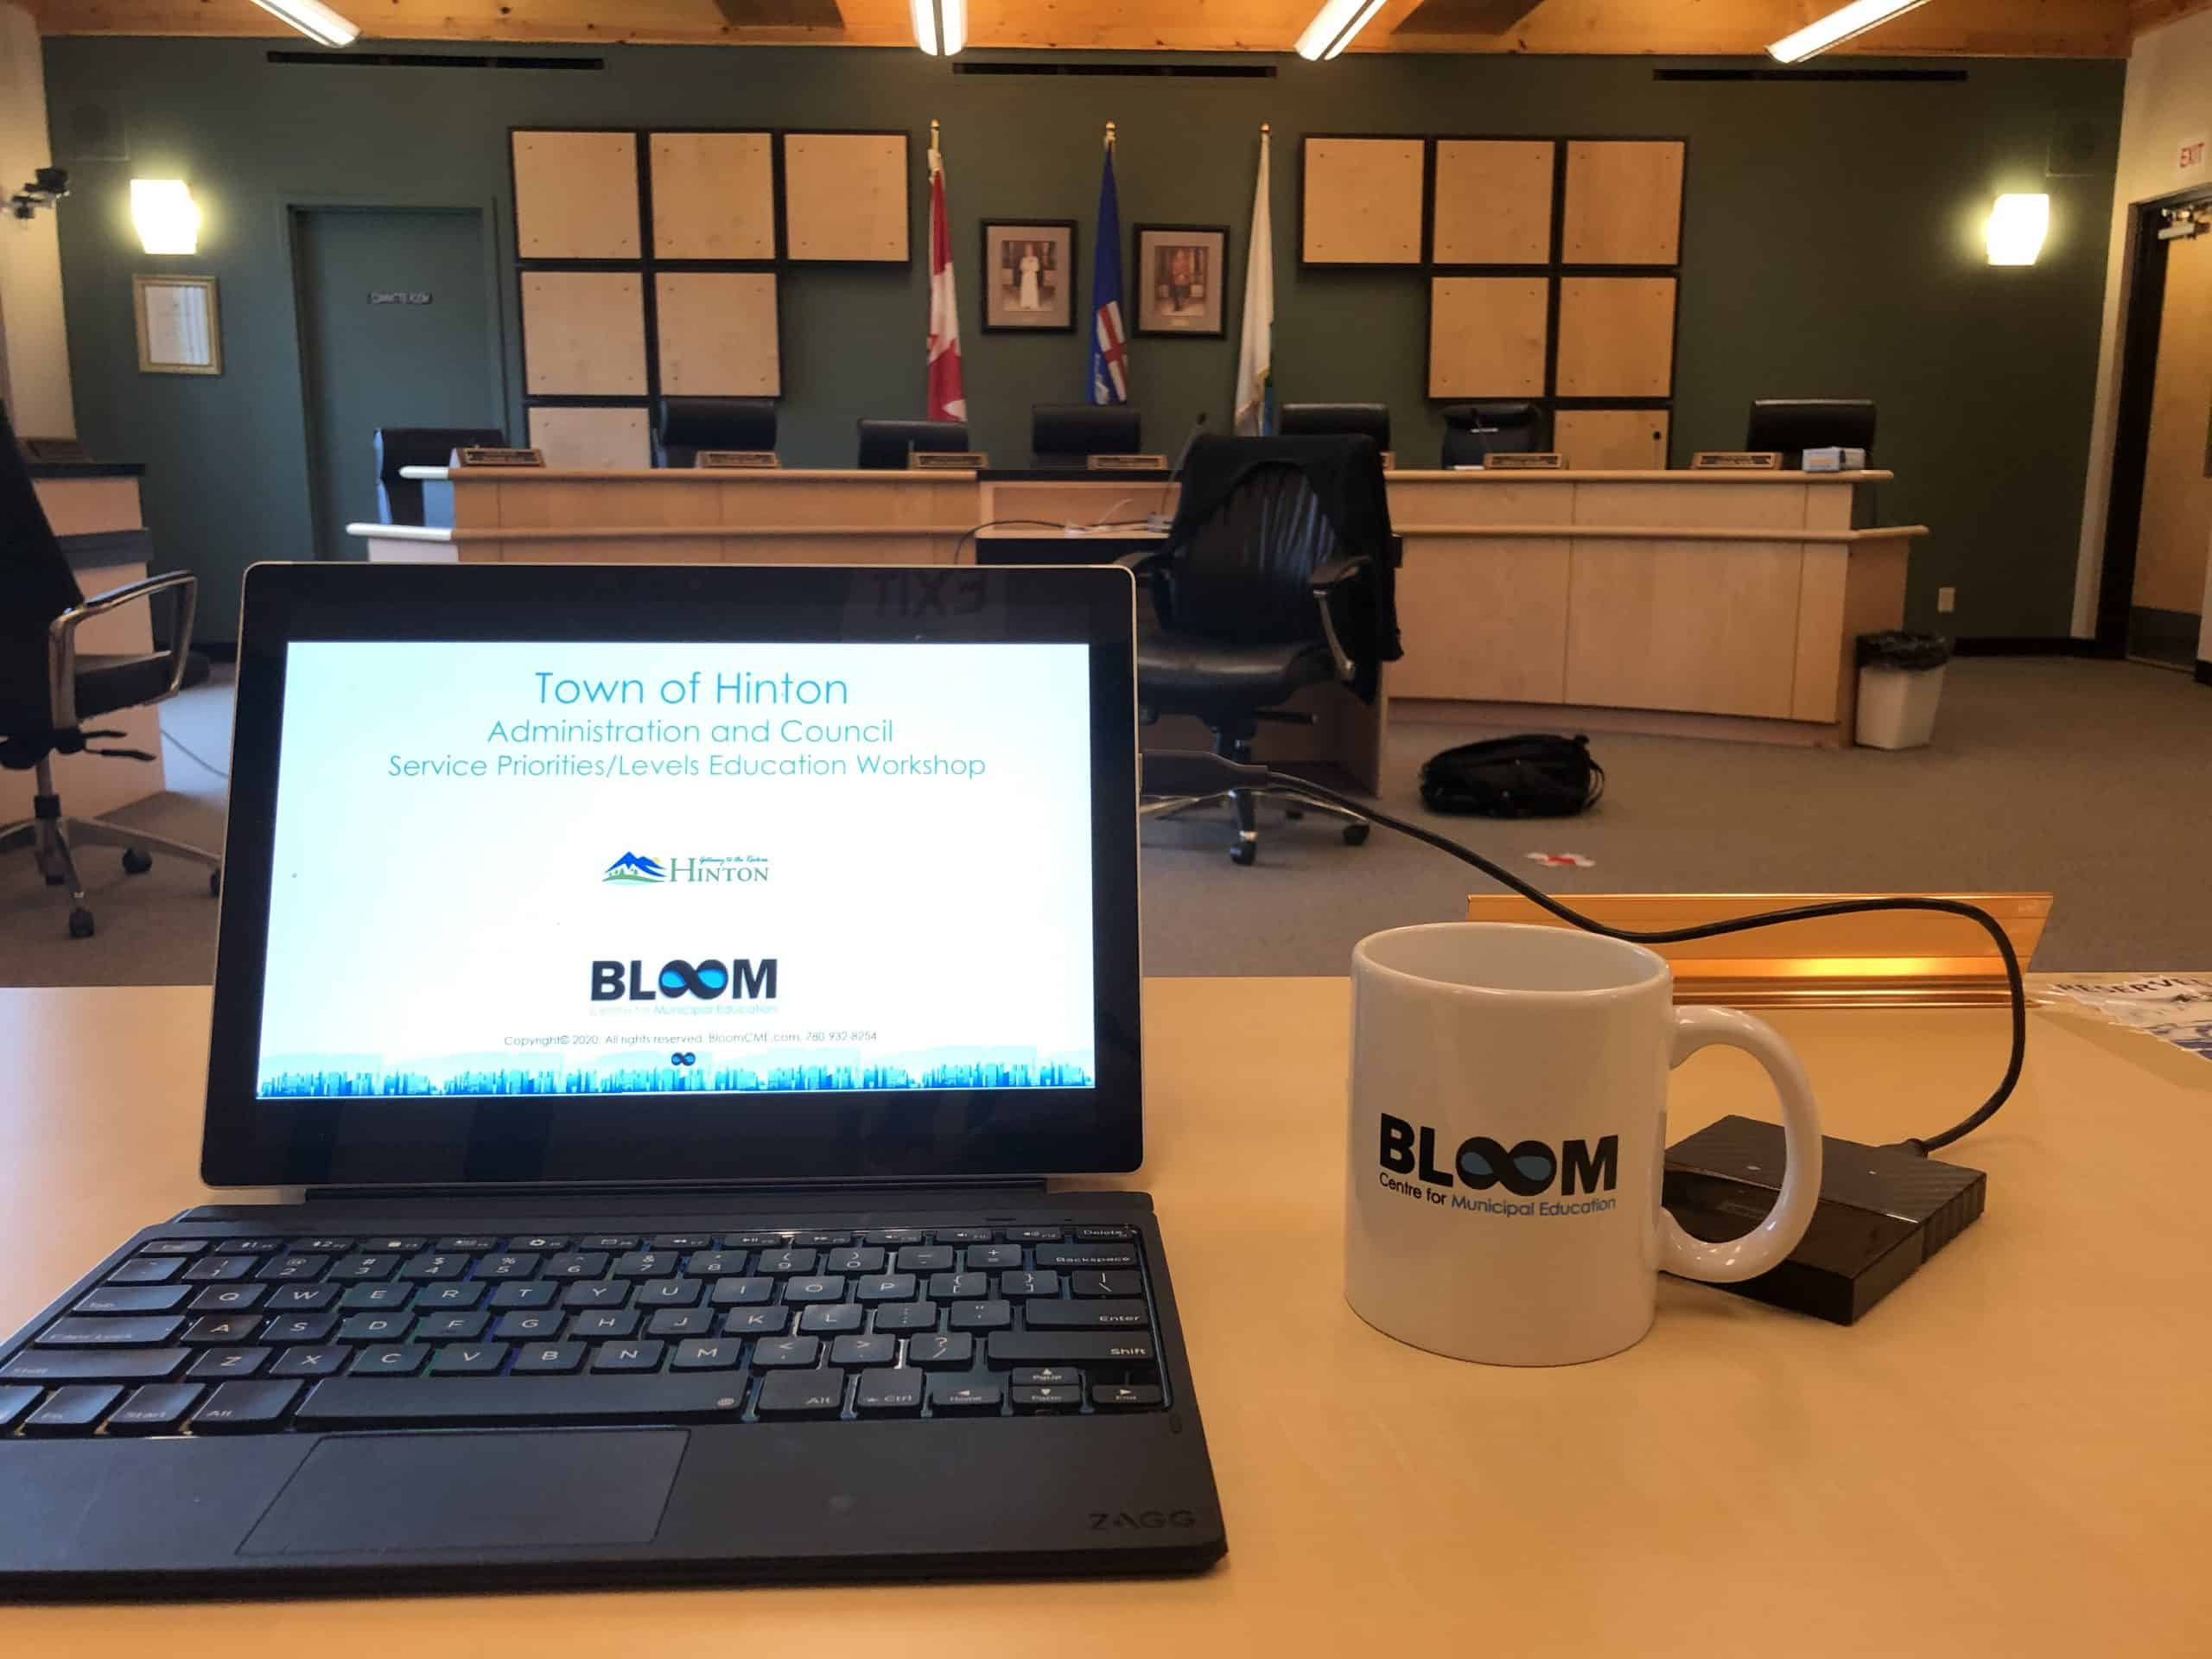 Town of Hinton - Service Priority Session